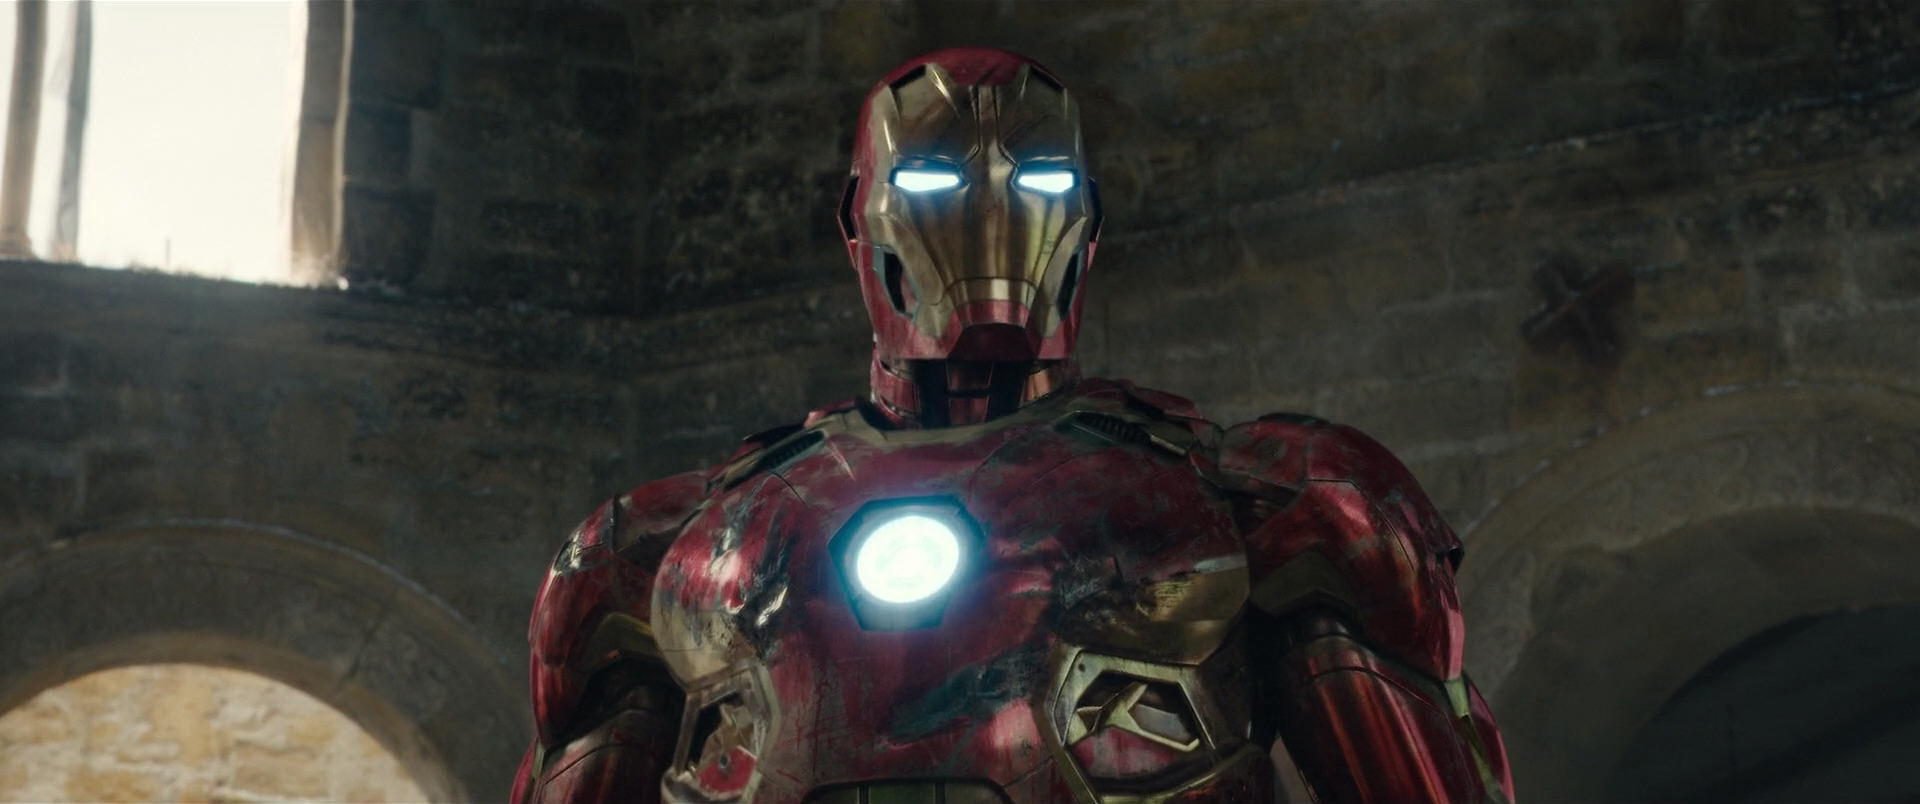 http://caps.pictures/201/5-avengers-ultron/full/age-ultron-movie-screencaps.com-13780.jpg